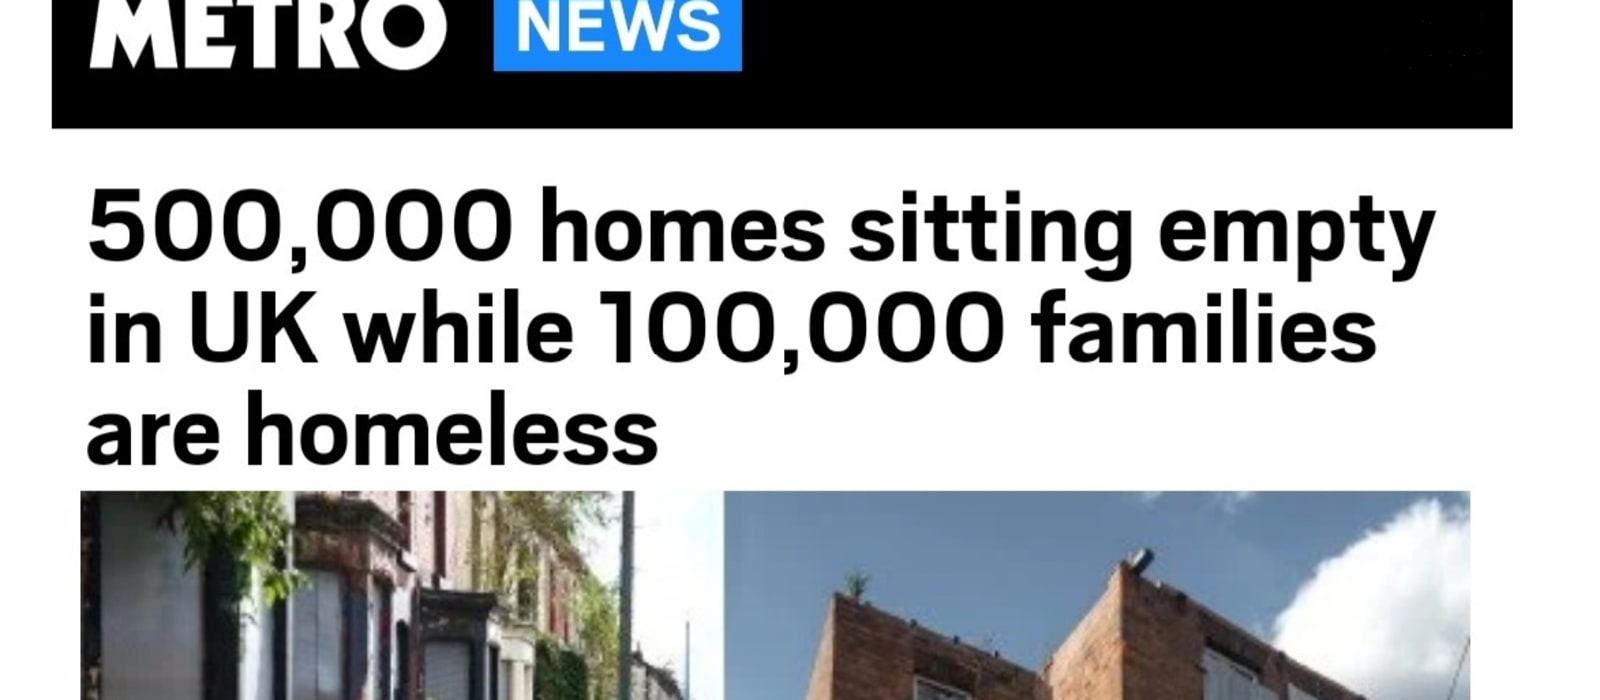 Metro features powerful examination of rising empty homes numbers as housing crisis and pandemic worsen